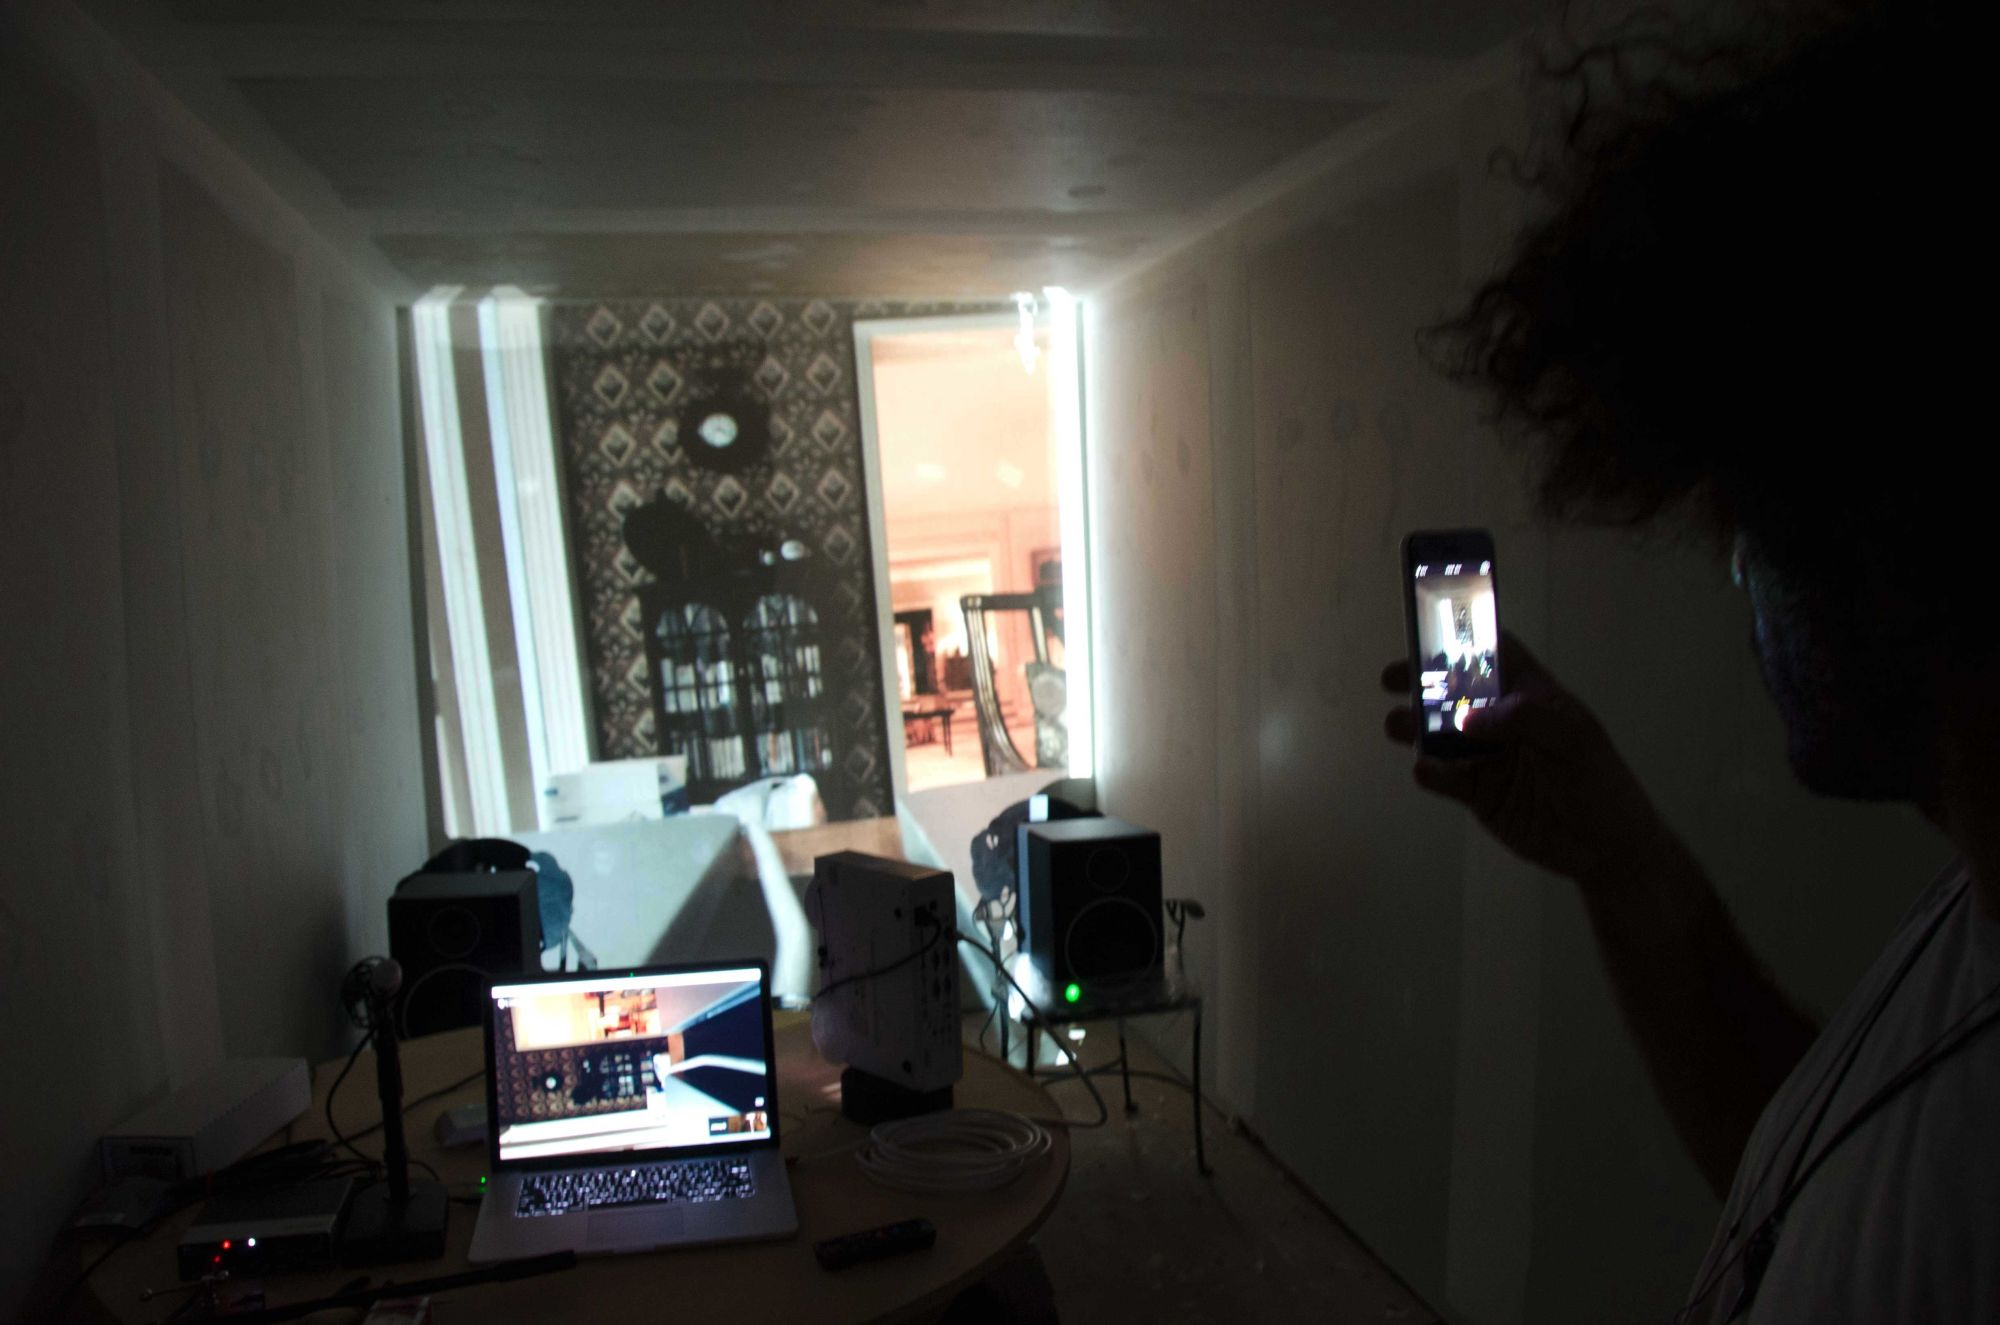 An early test of the Portals technology is easily mistaken for a window into Amar's living room.